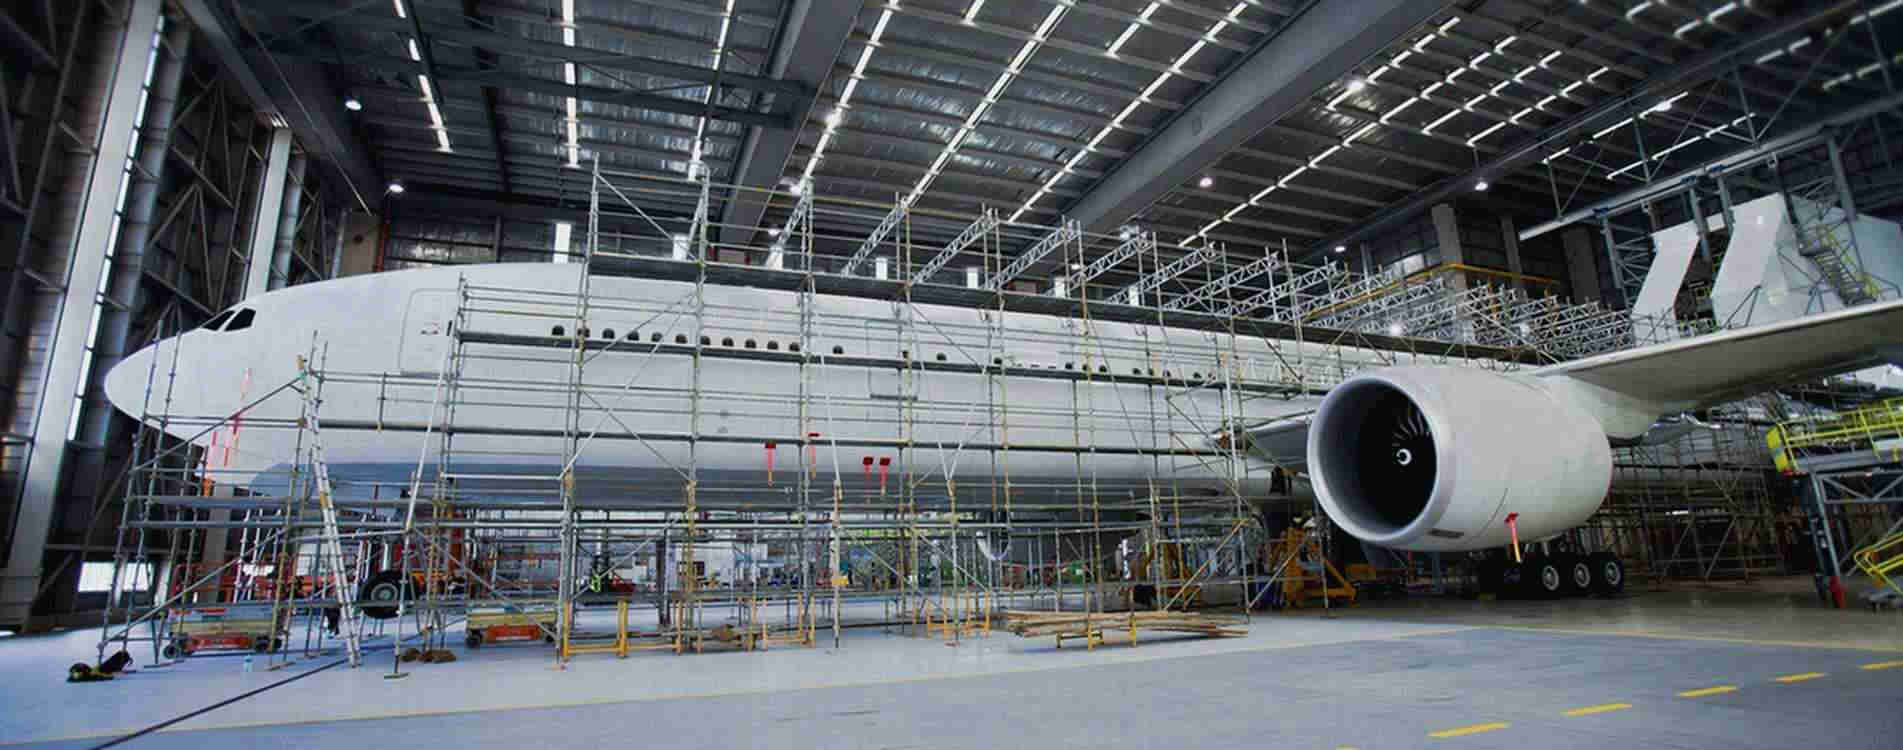 Aircraft Scaffolding for Maintenance